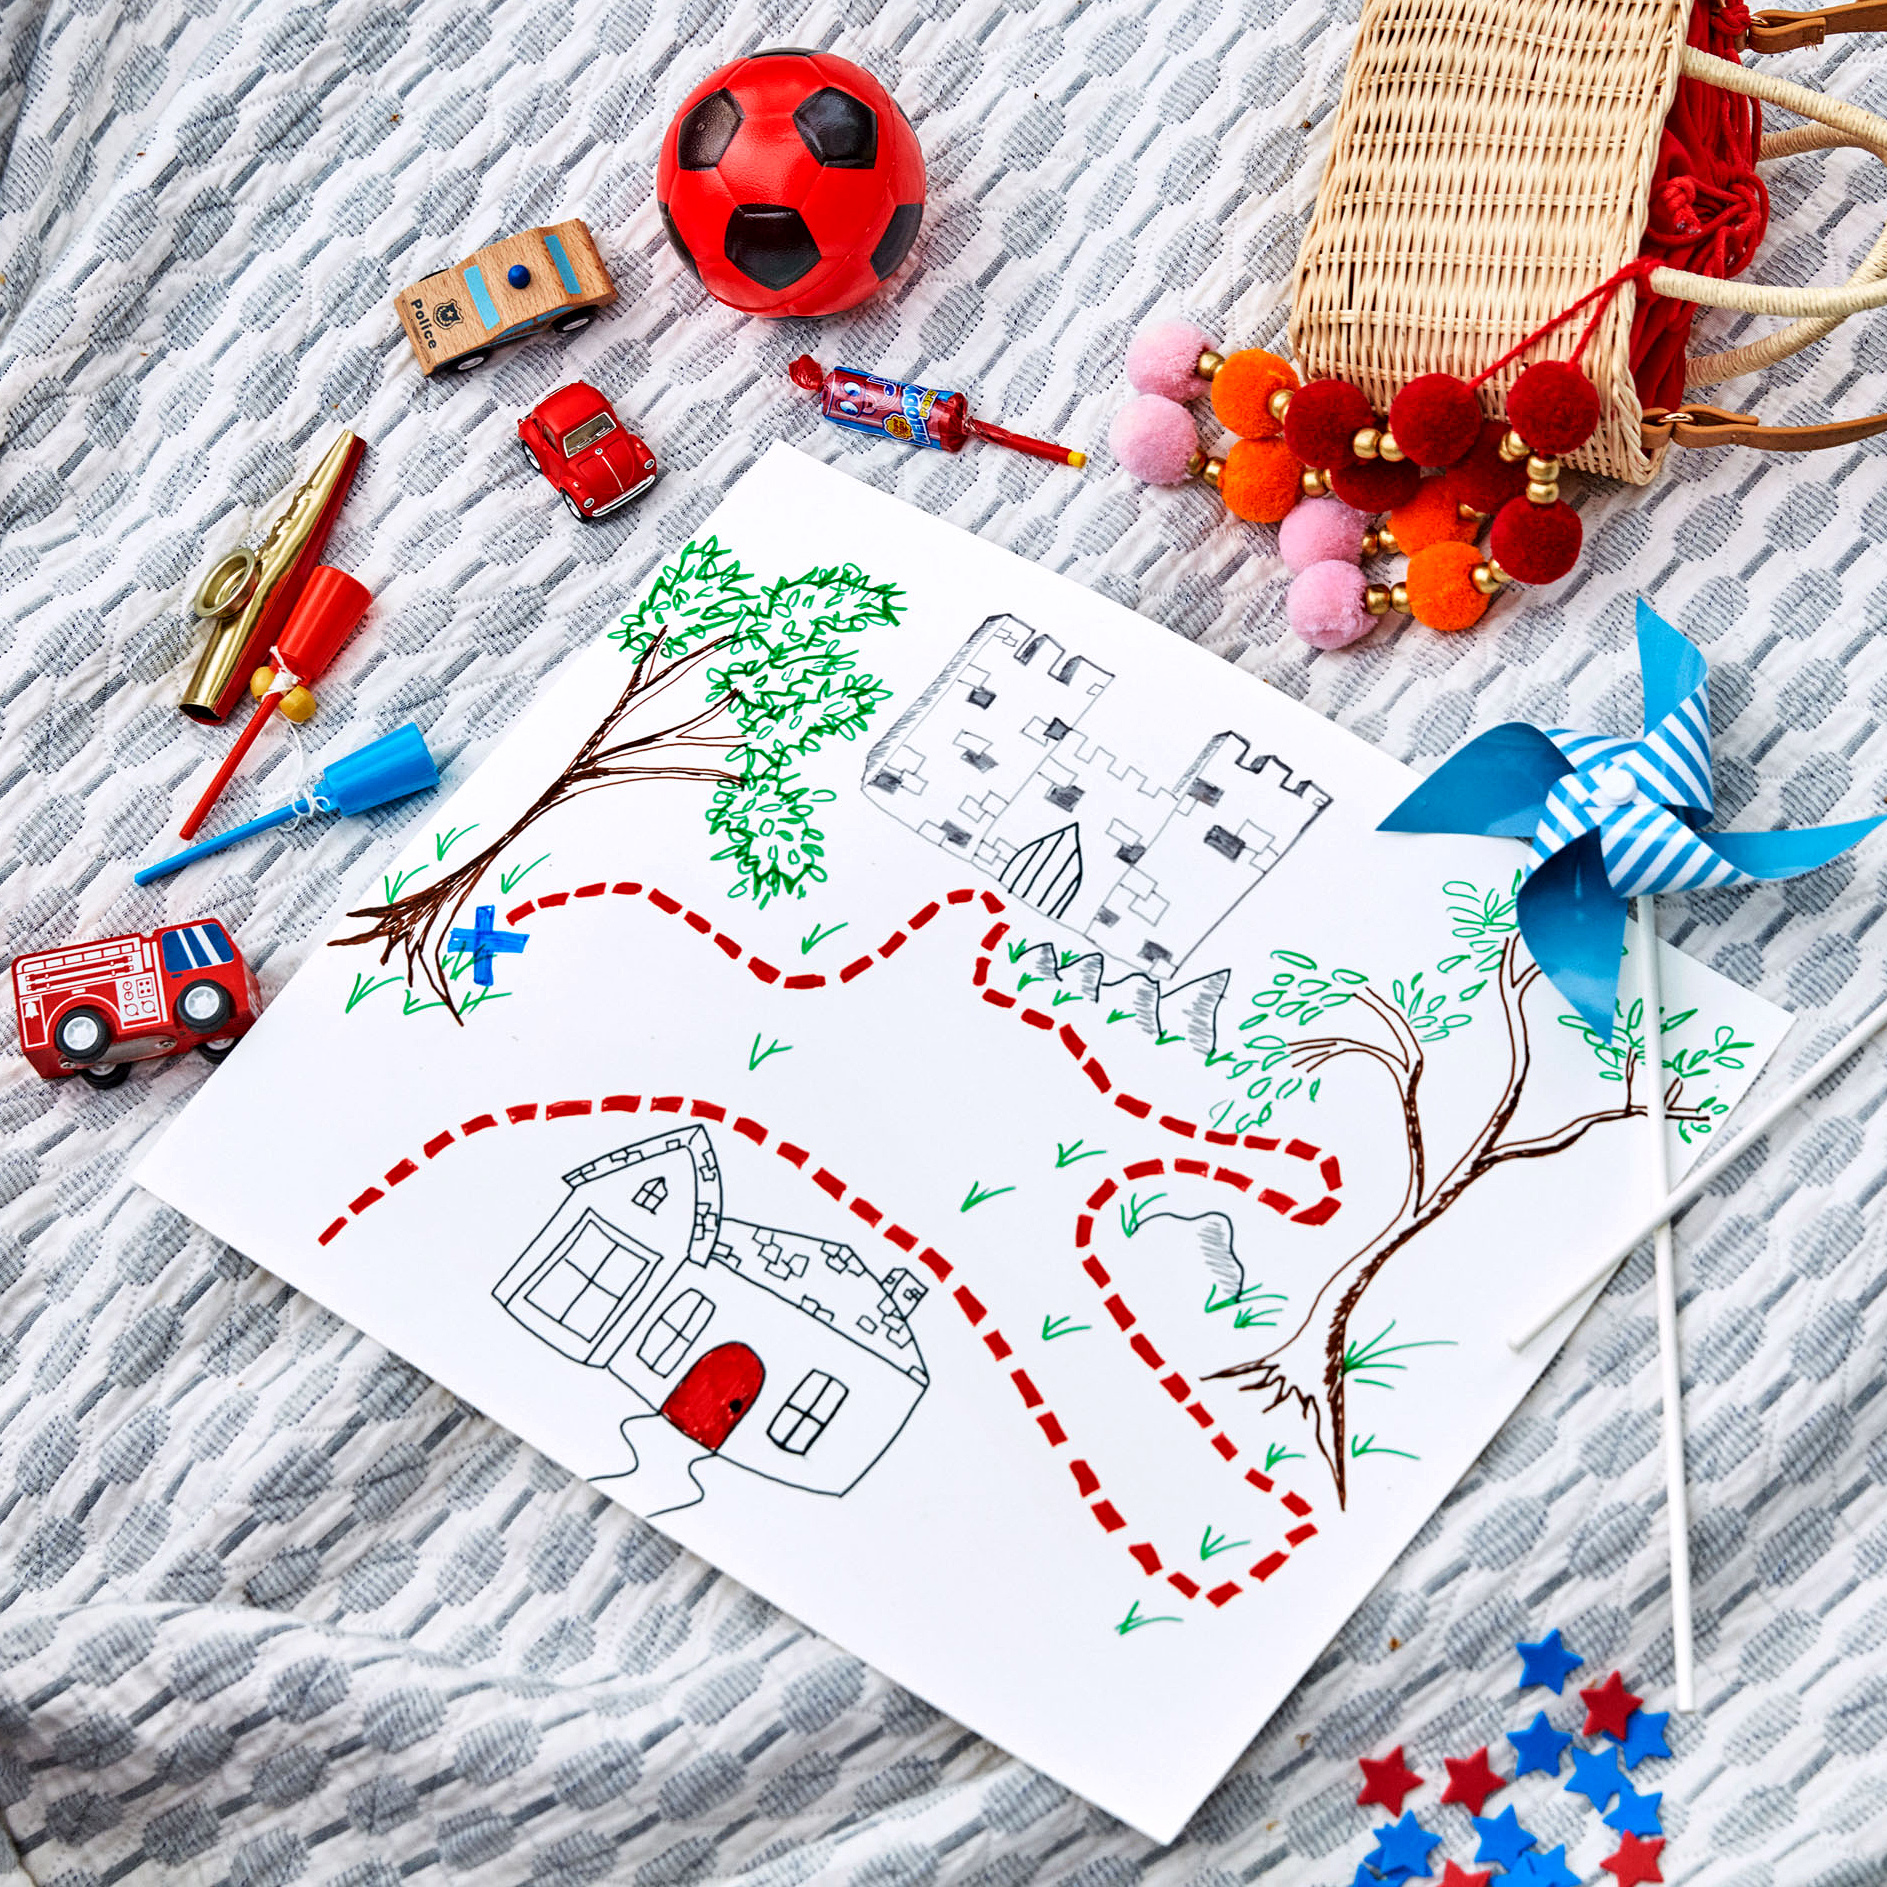 hand-drawn july fourth scavenger hunt map